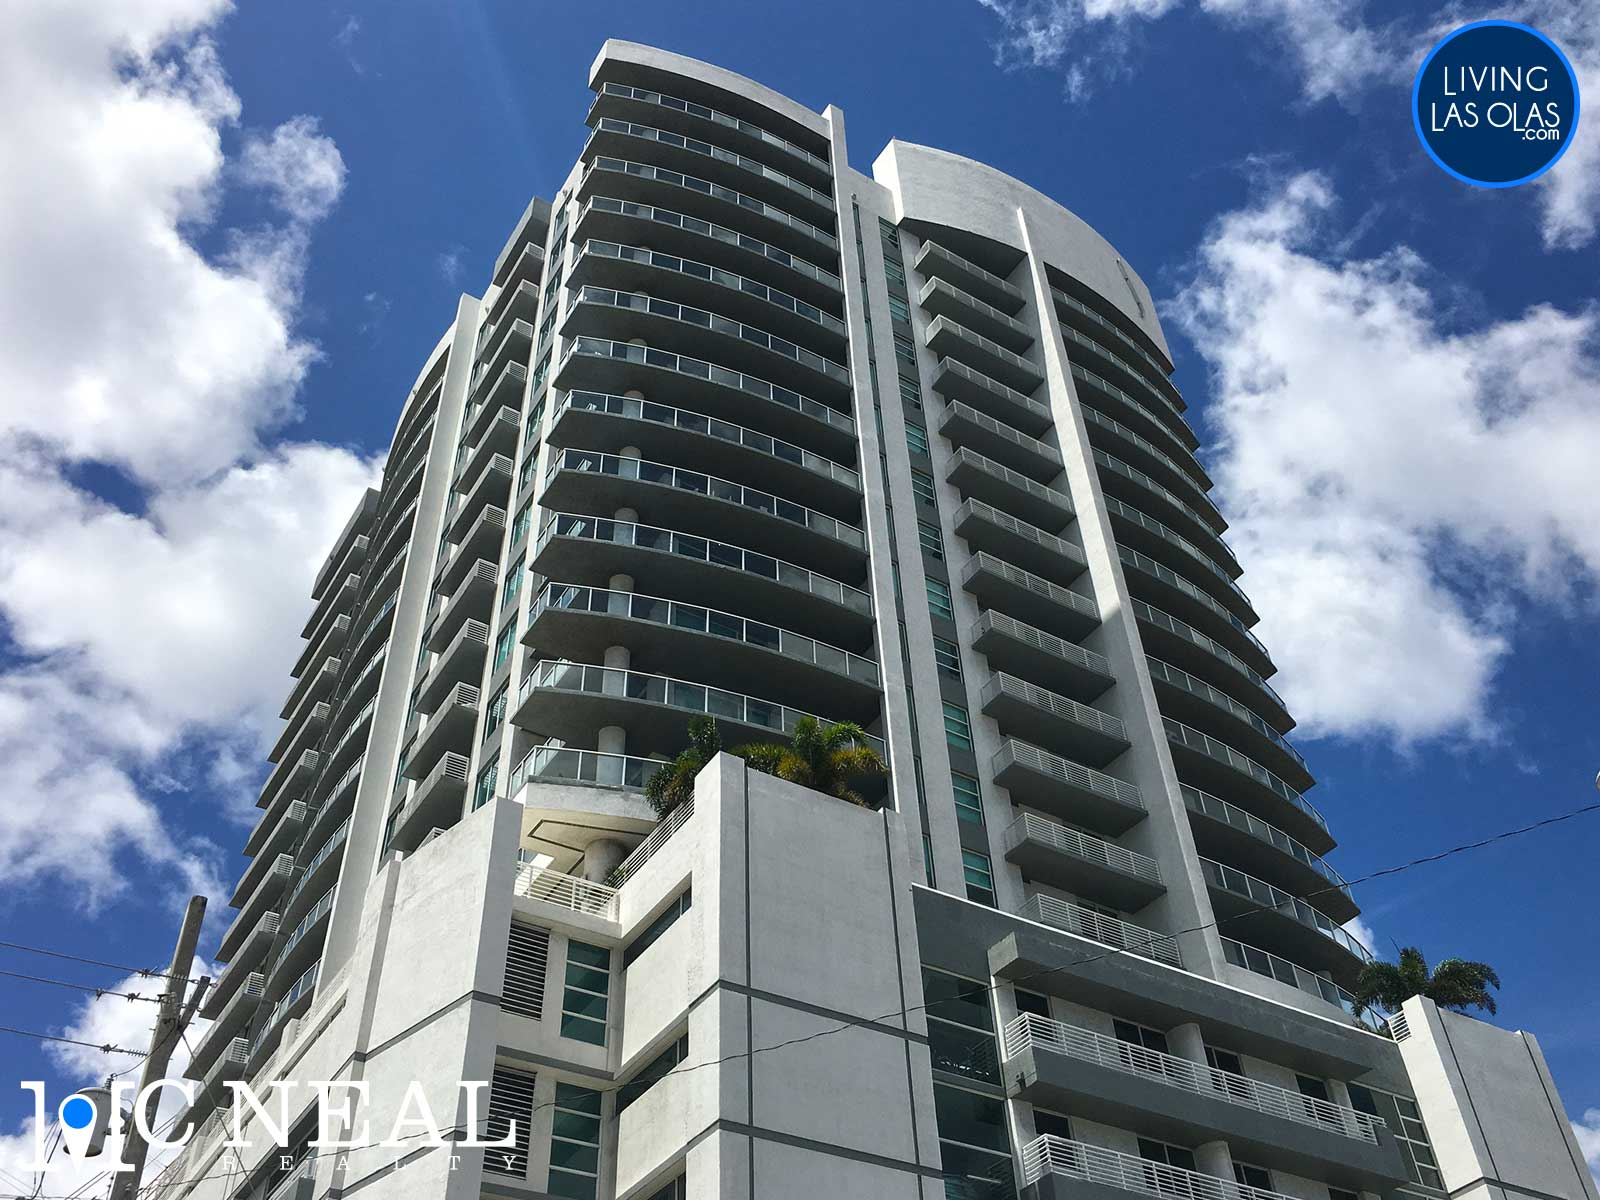 Strad 315 Condos Ft Lauderdale Images 02